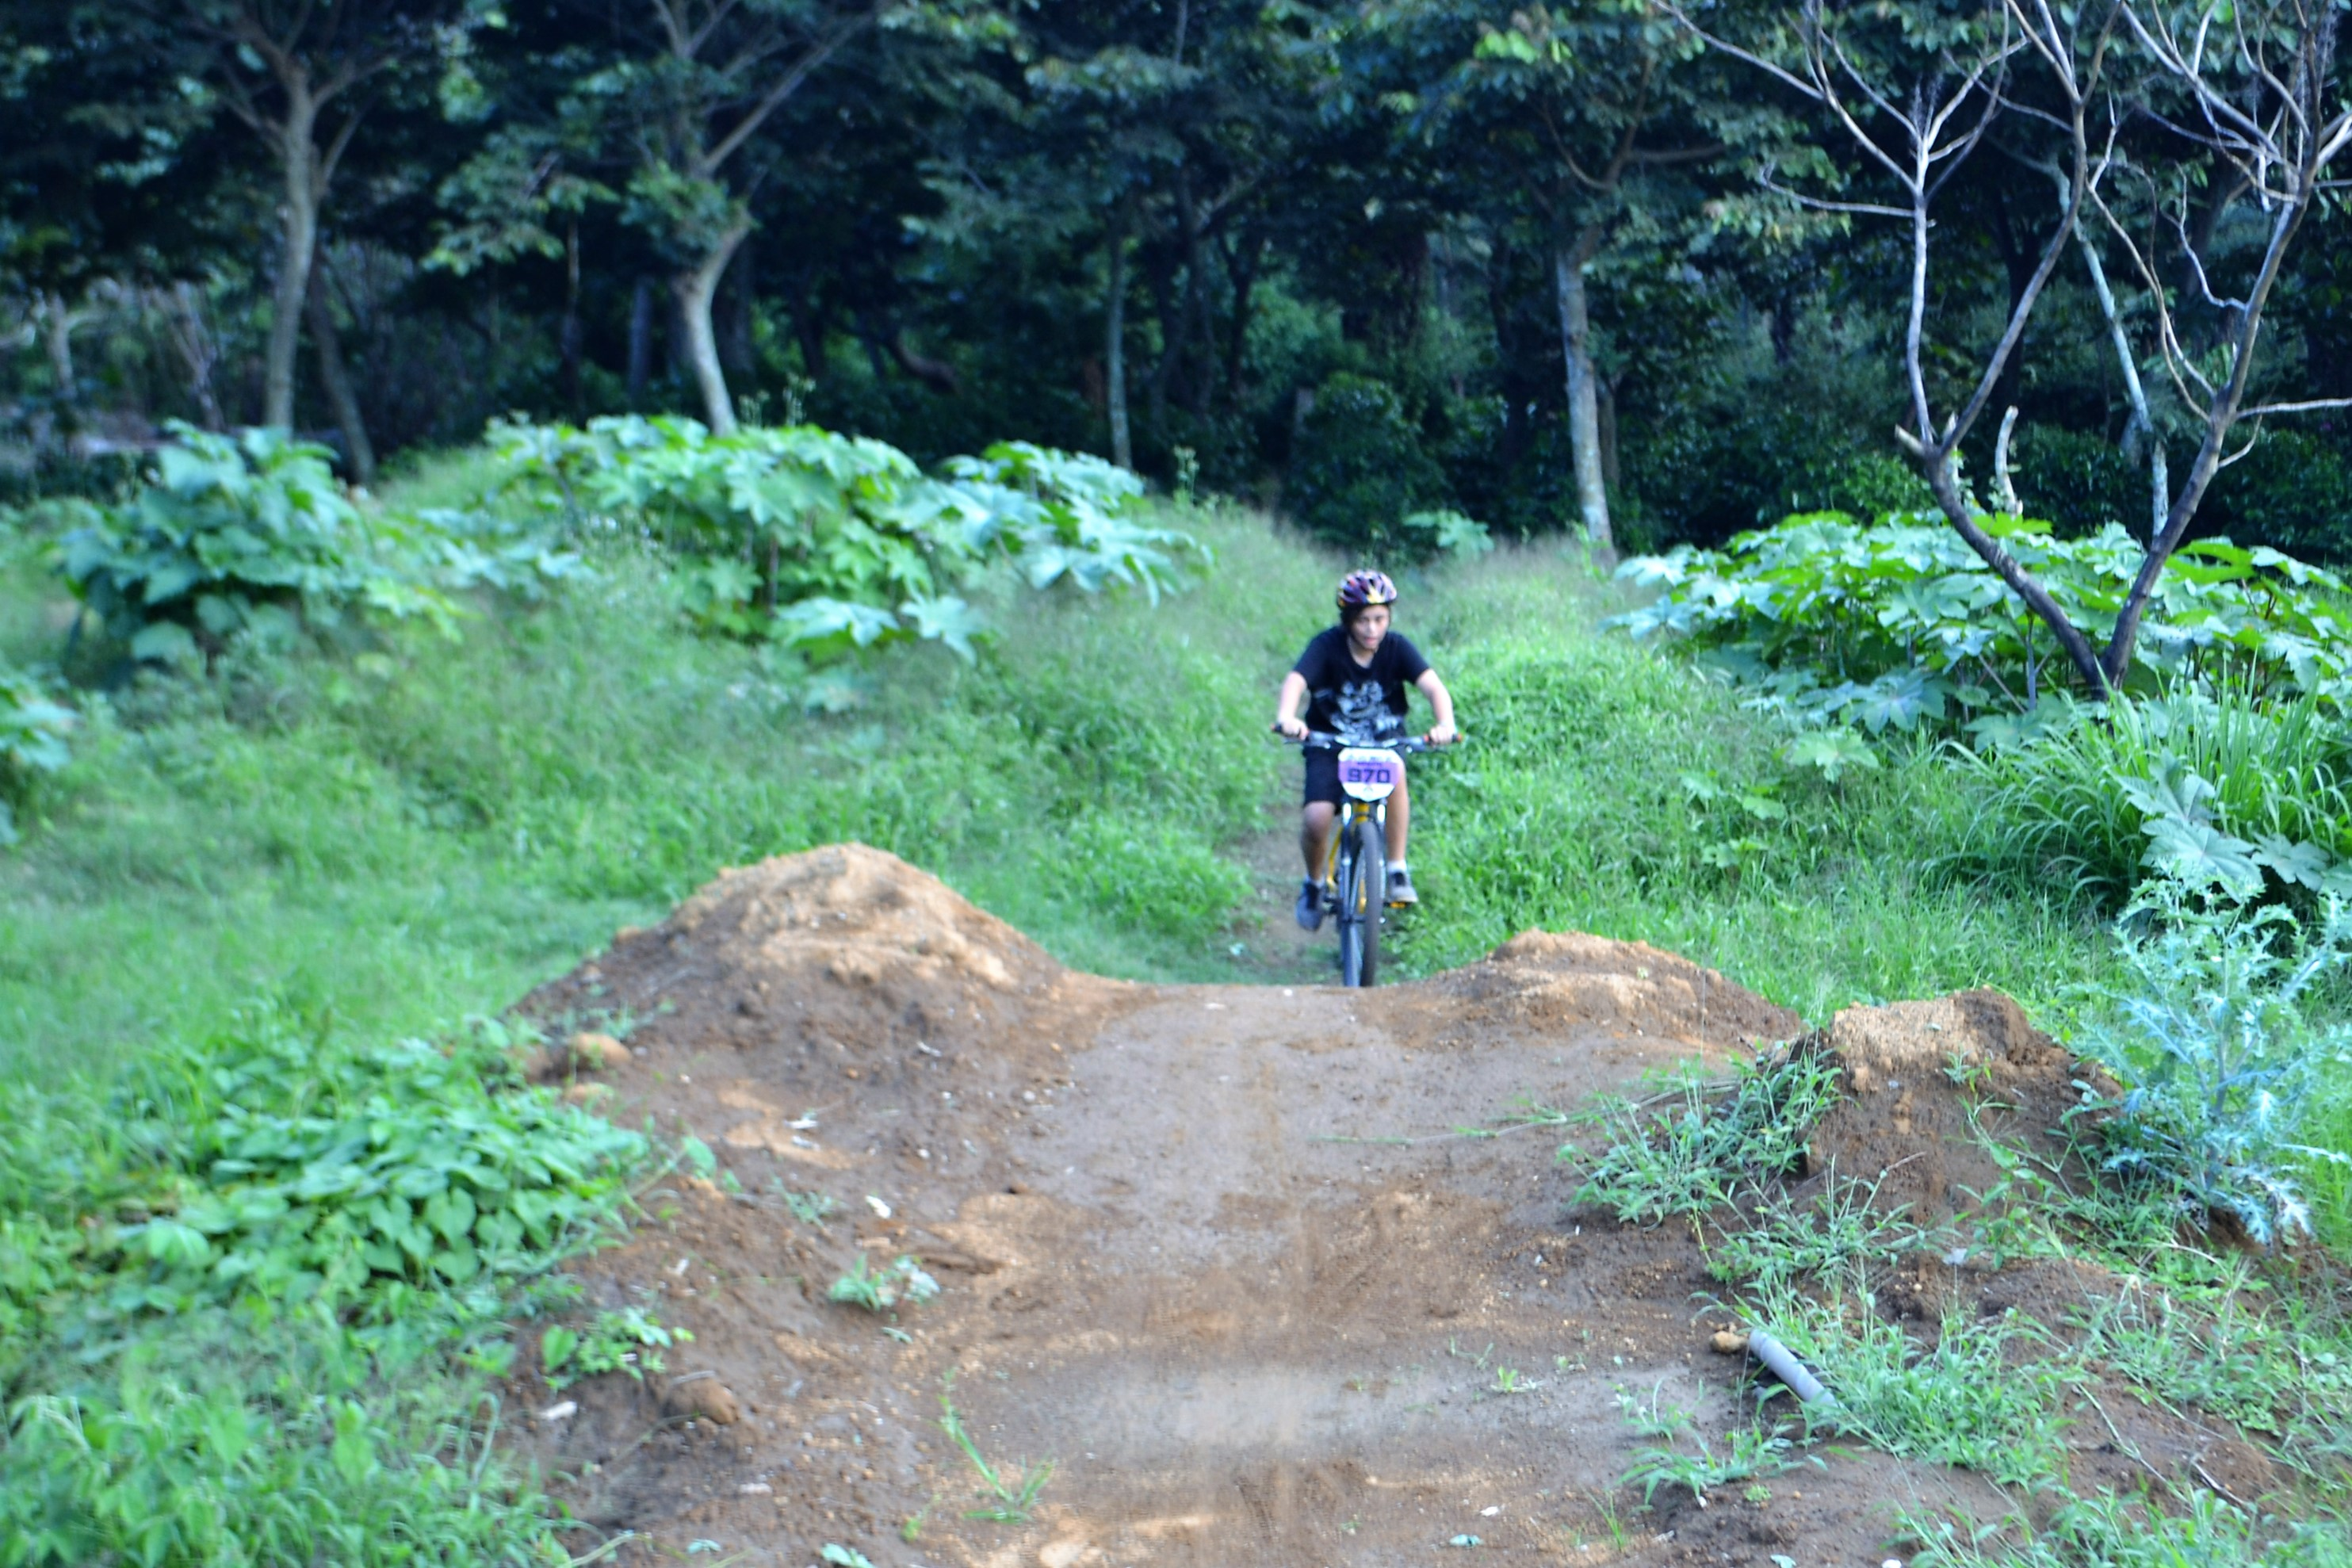 off road terrain for cycle training - local pump track